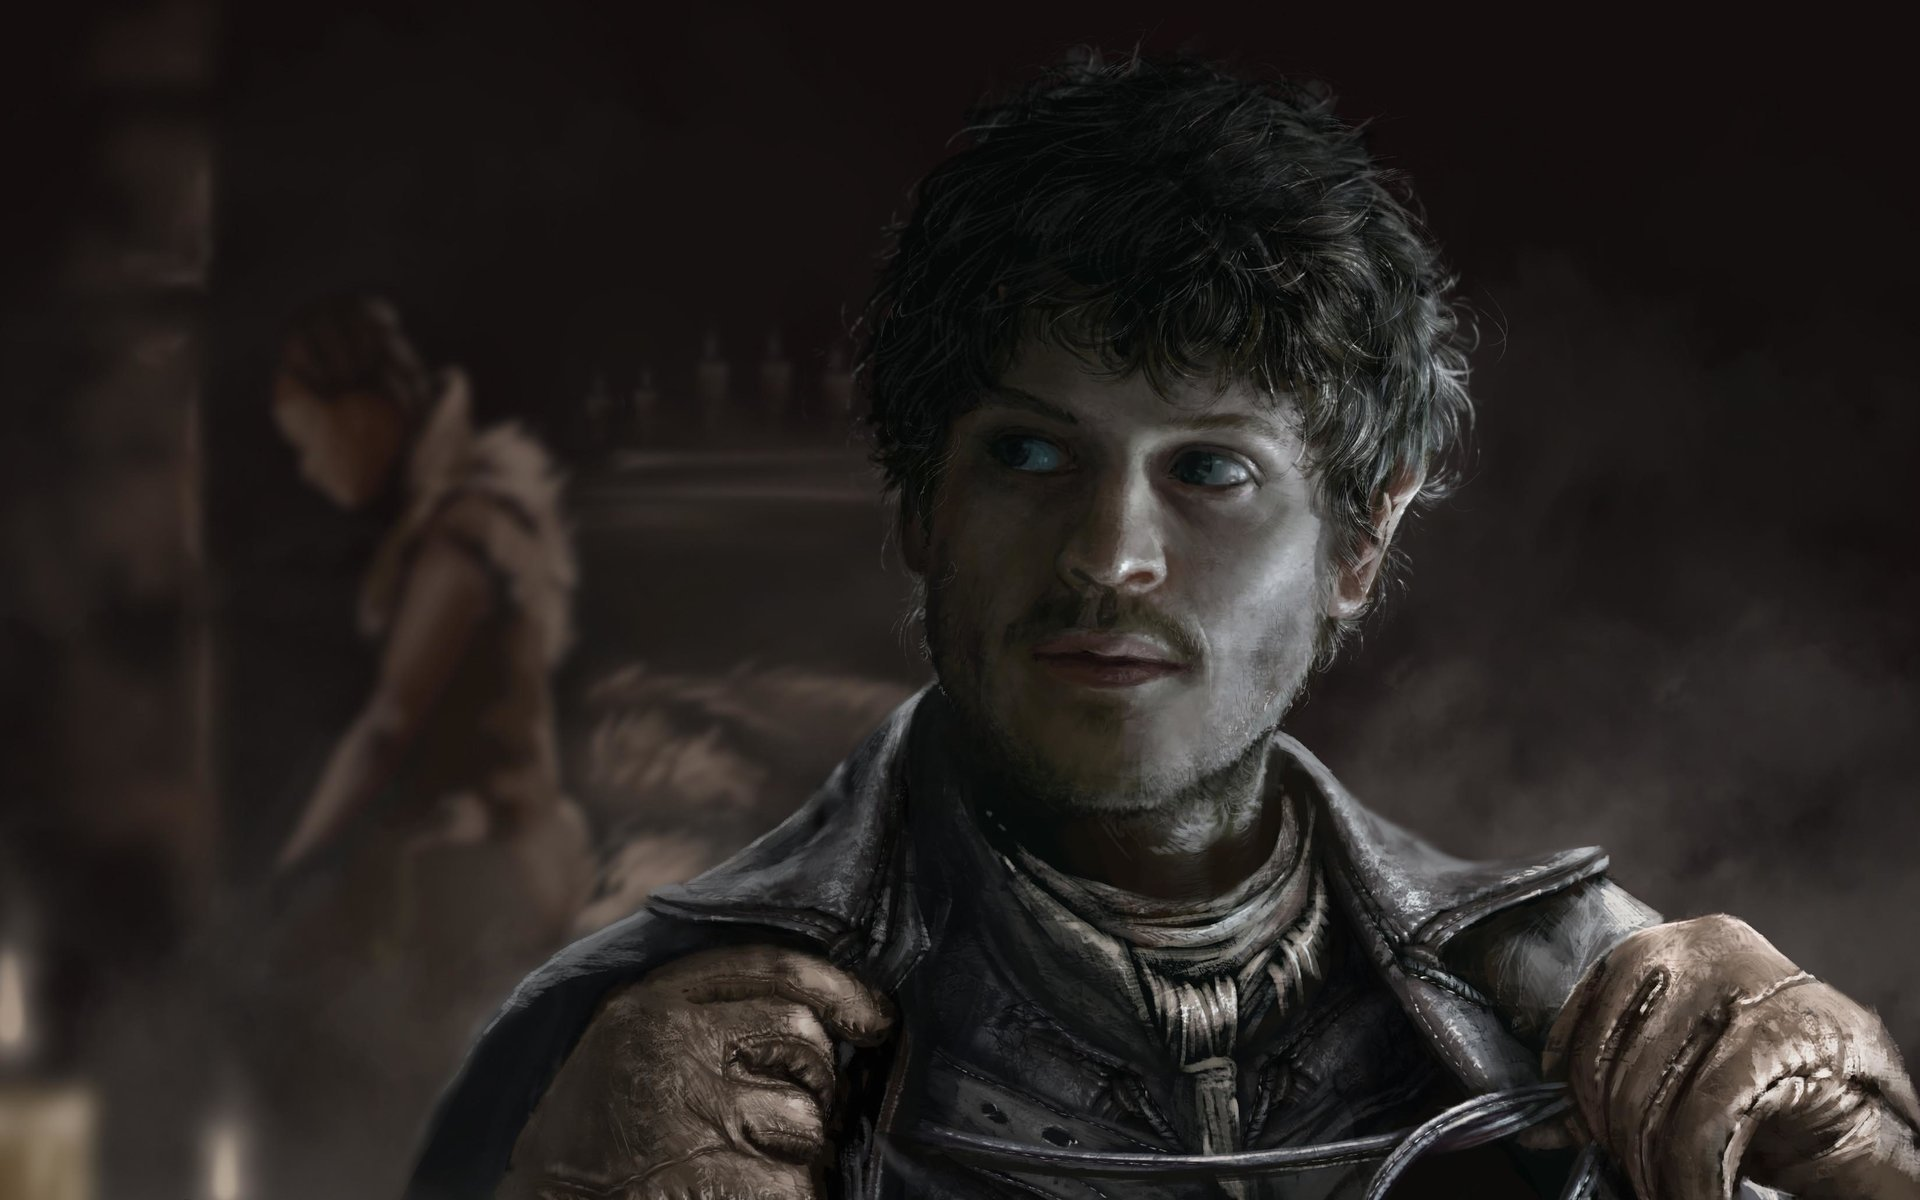 713920 Title Tv Show Game Of Thrones Ramsay Bolton Game Of Thrones Ramsay Bolton 1920x1200 Download Hd Wallpaper Wallpapertip